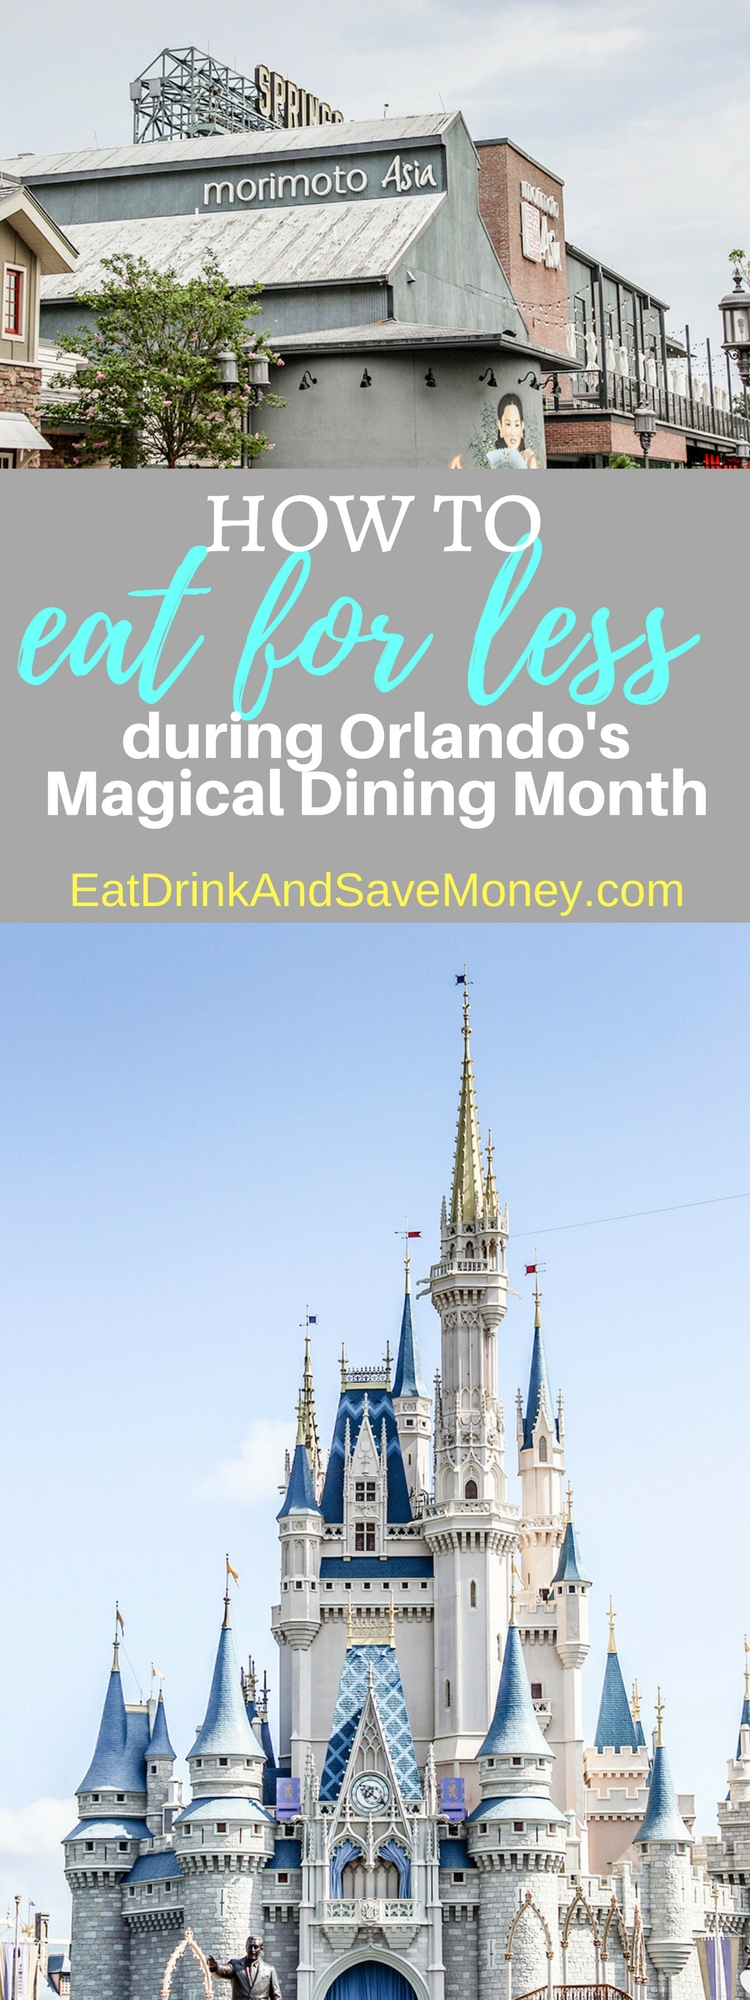 How to eat for less during Orlando's Magical Dining Month. Save money dining in Disney and save money dining in Orlando with these tips.